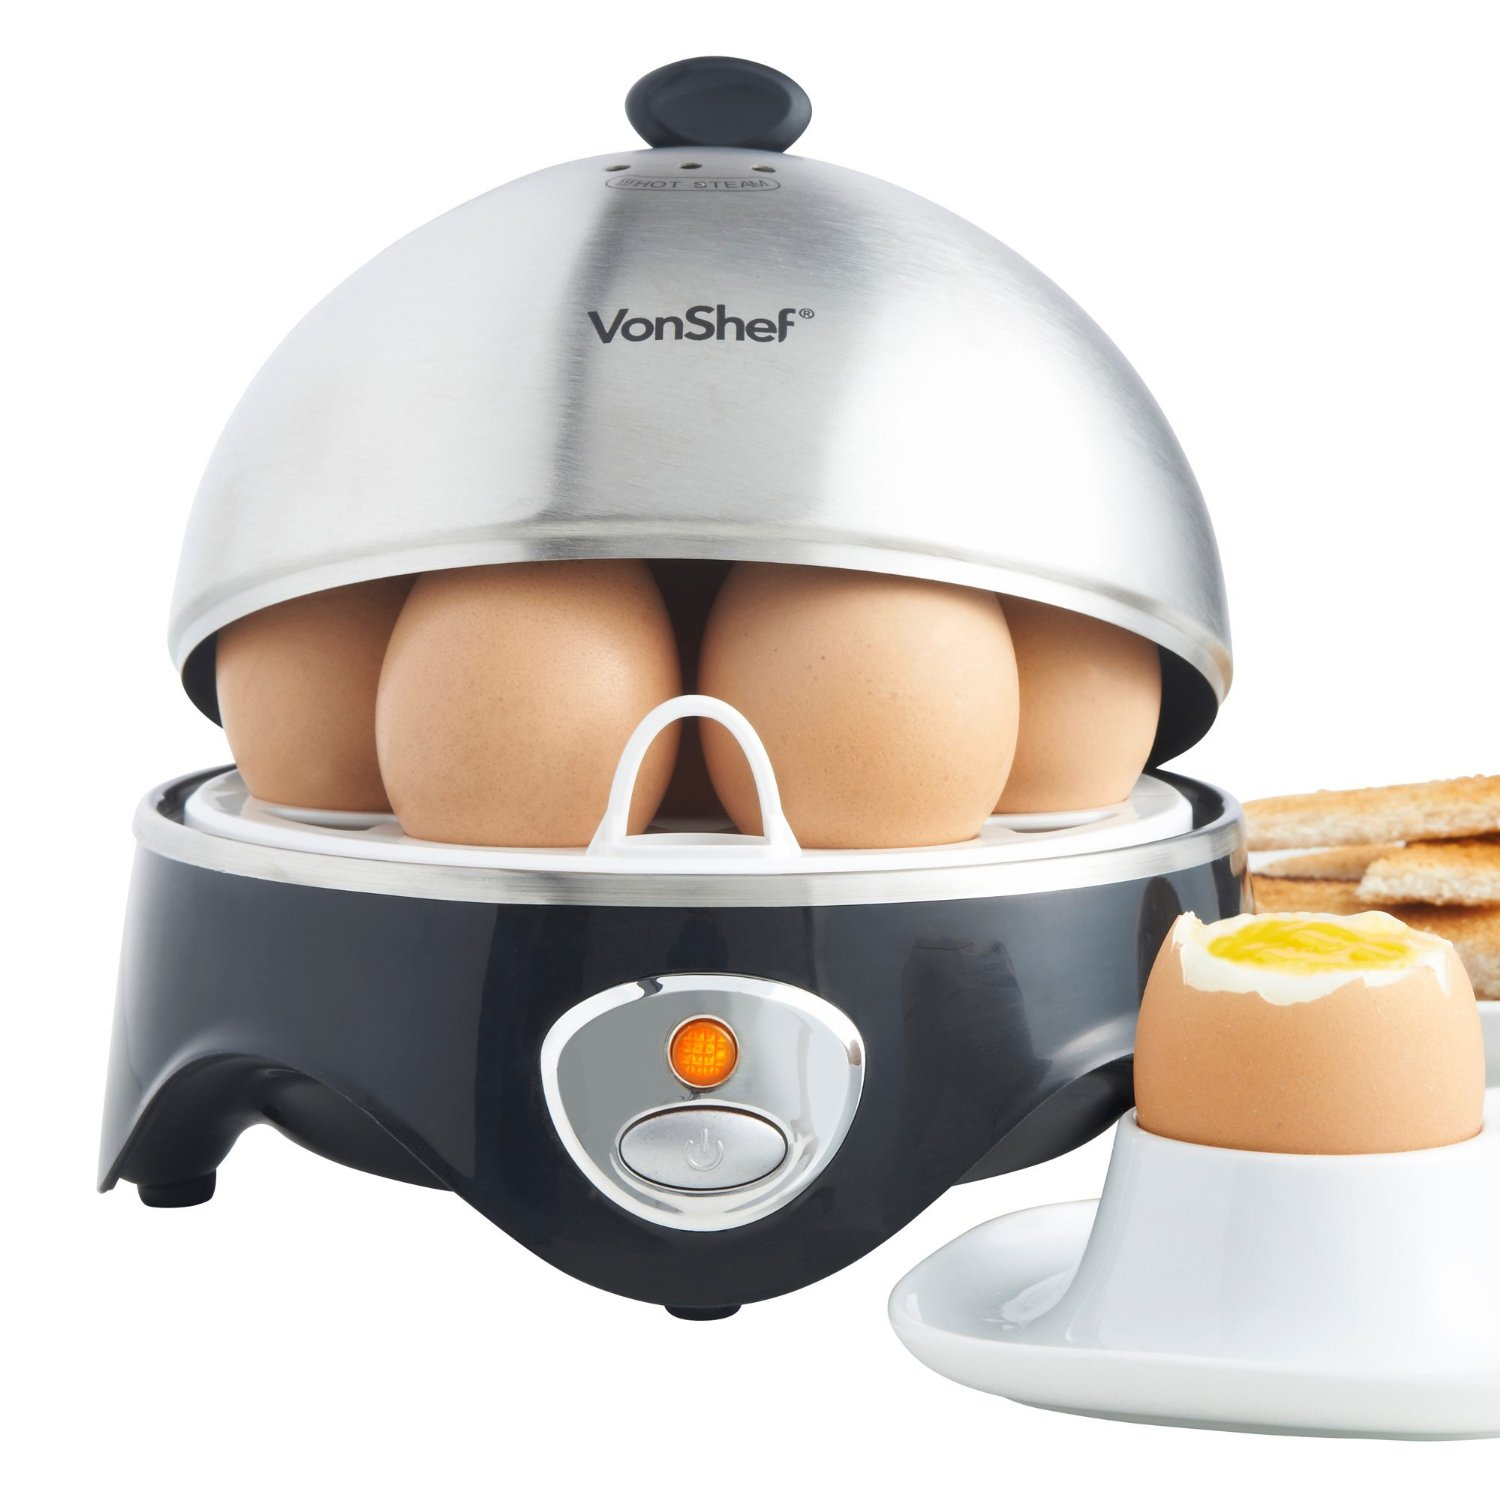 VonShef Egg Magic Witchcraft Cooker